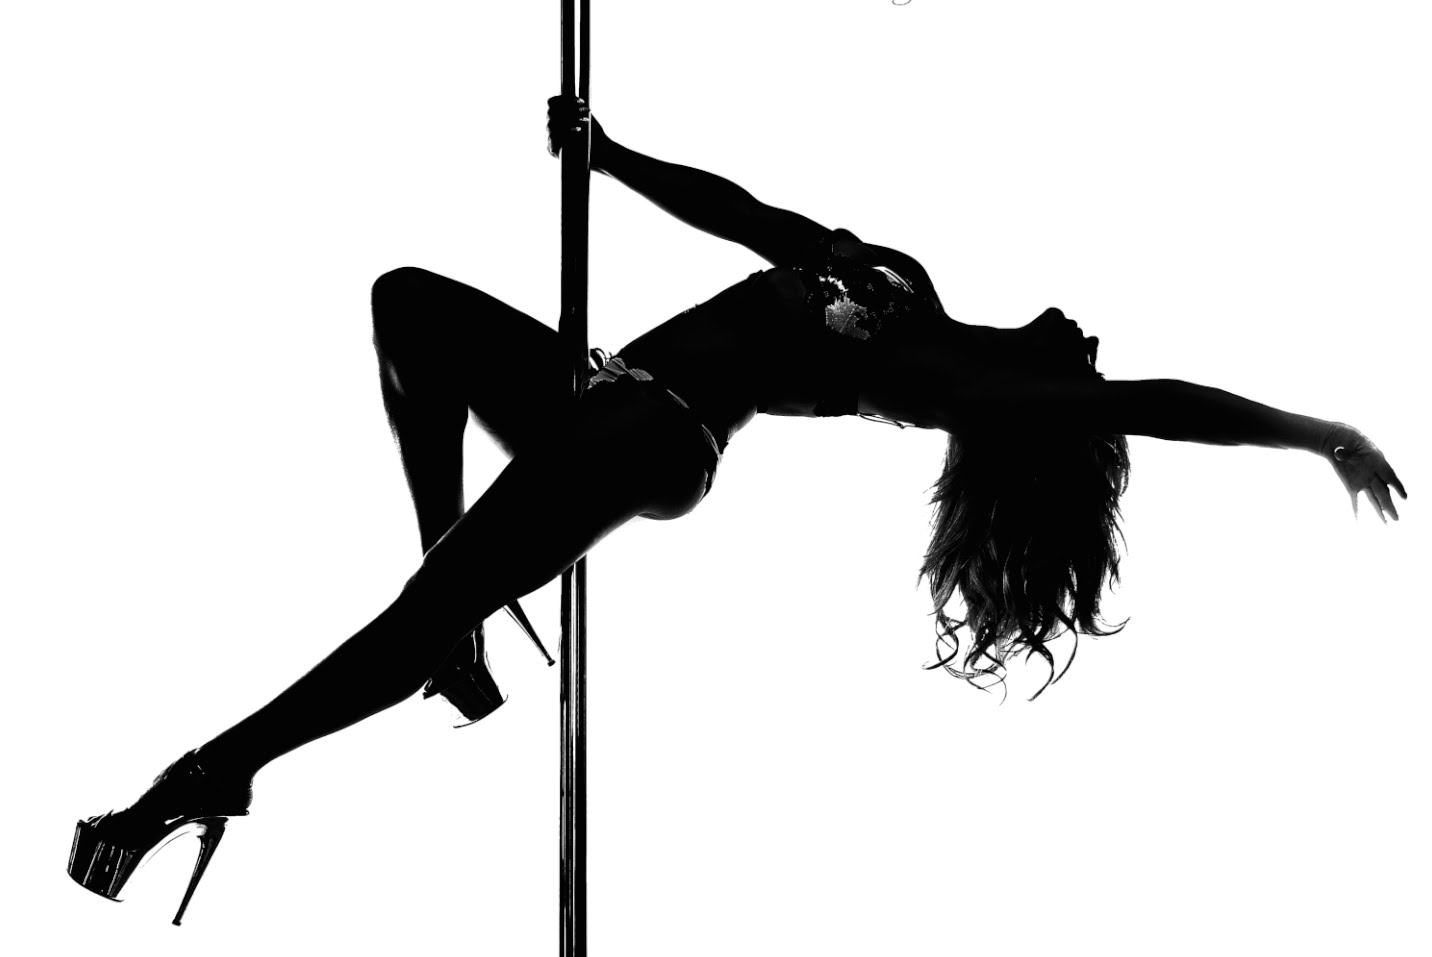 Pole bending silhouette